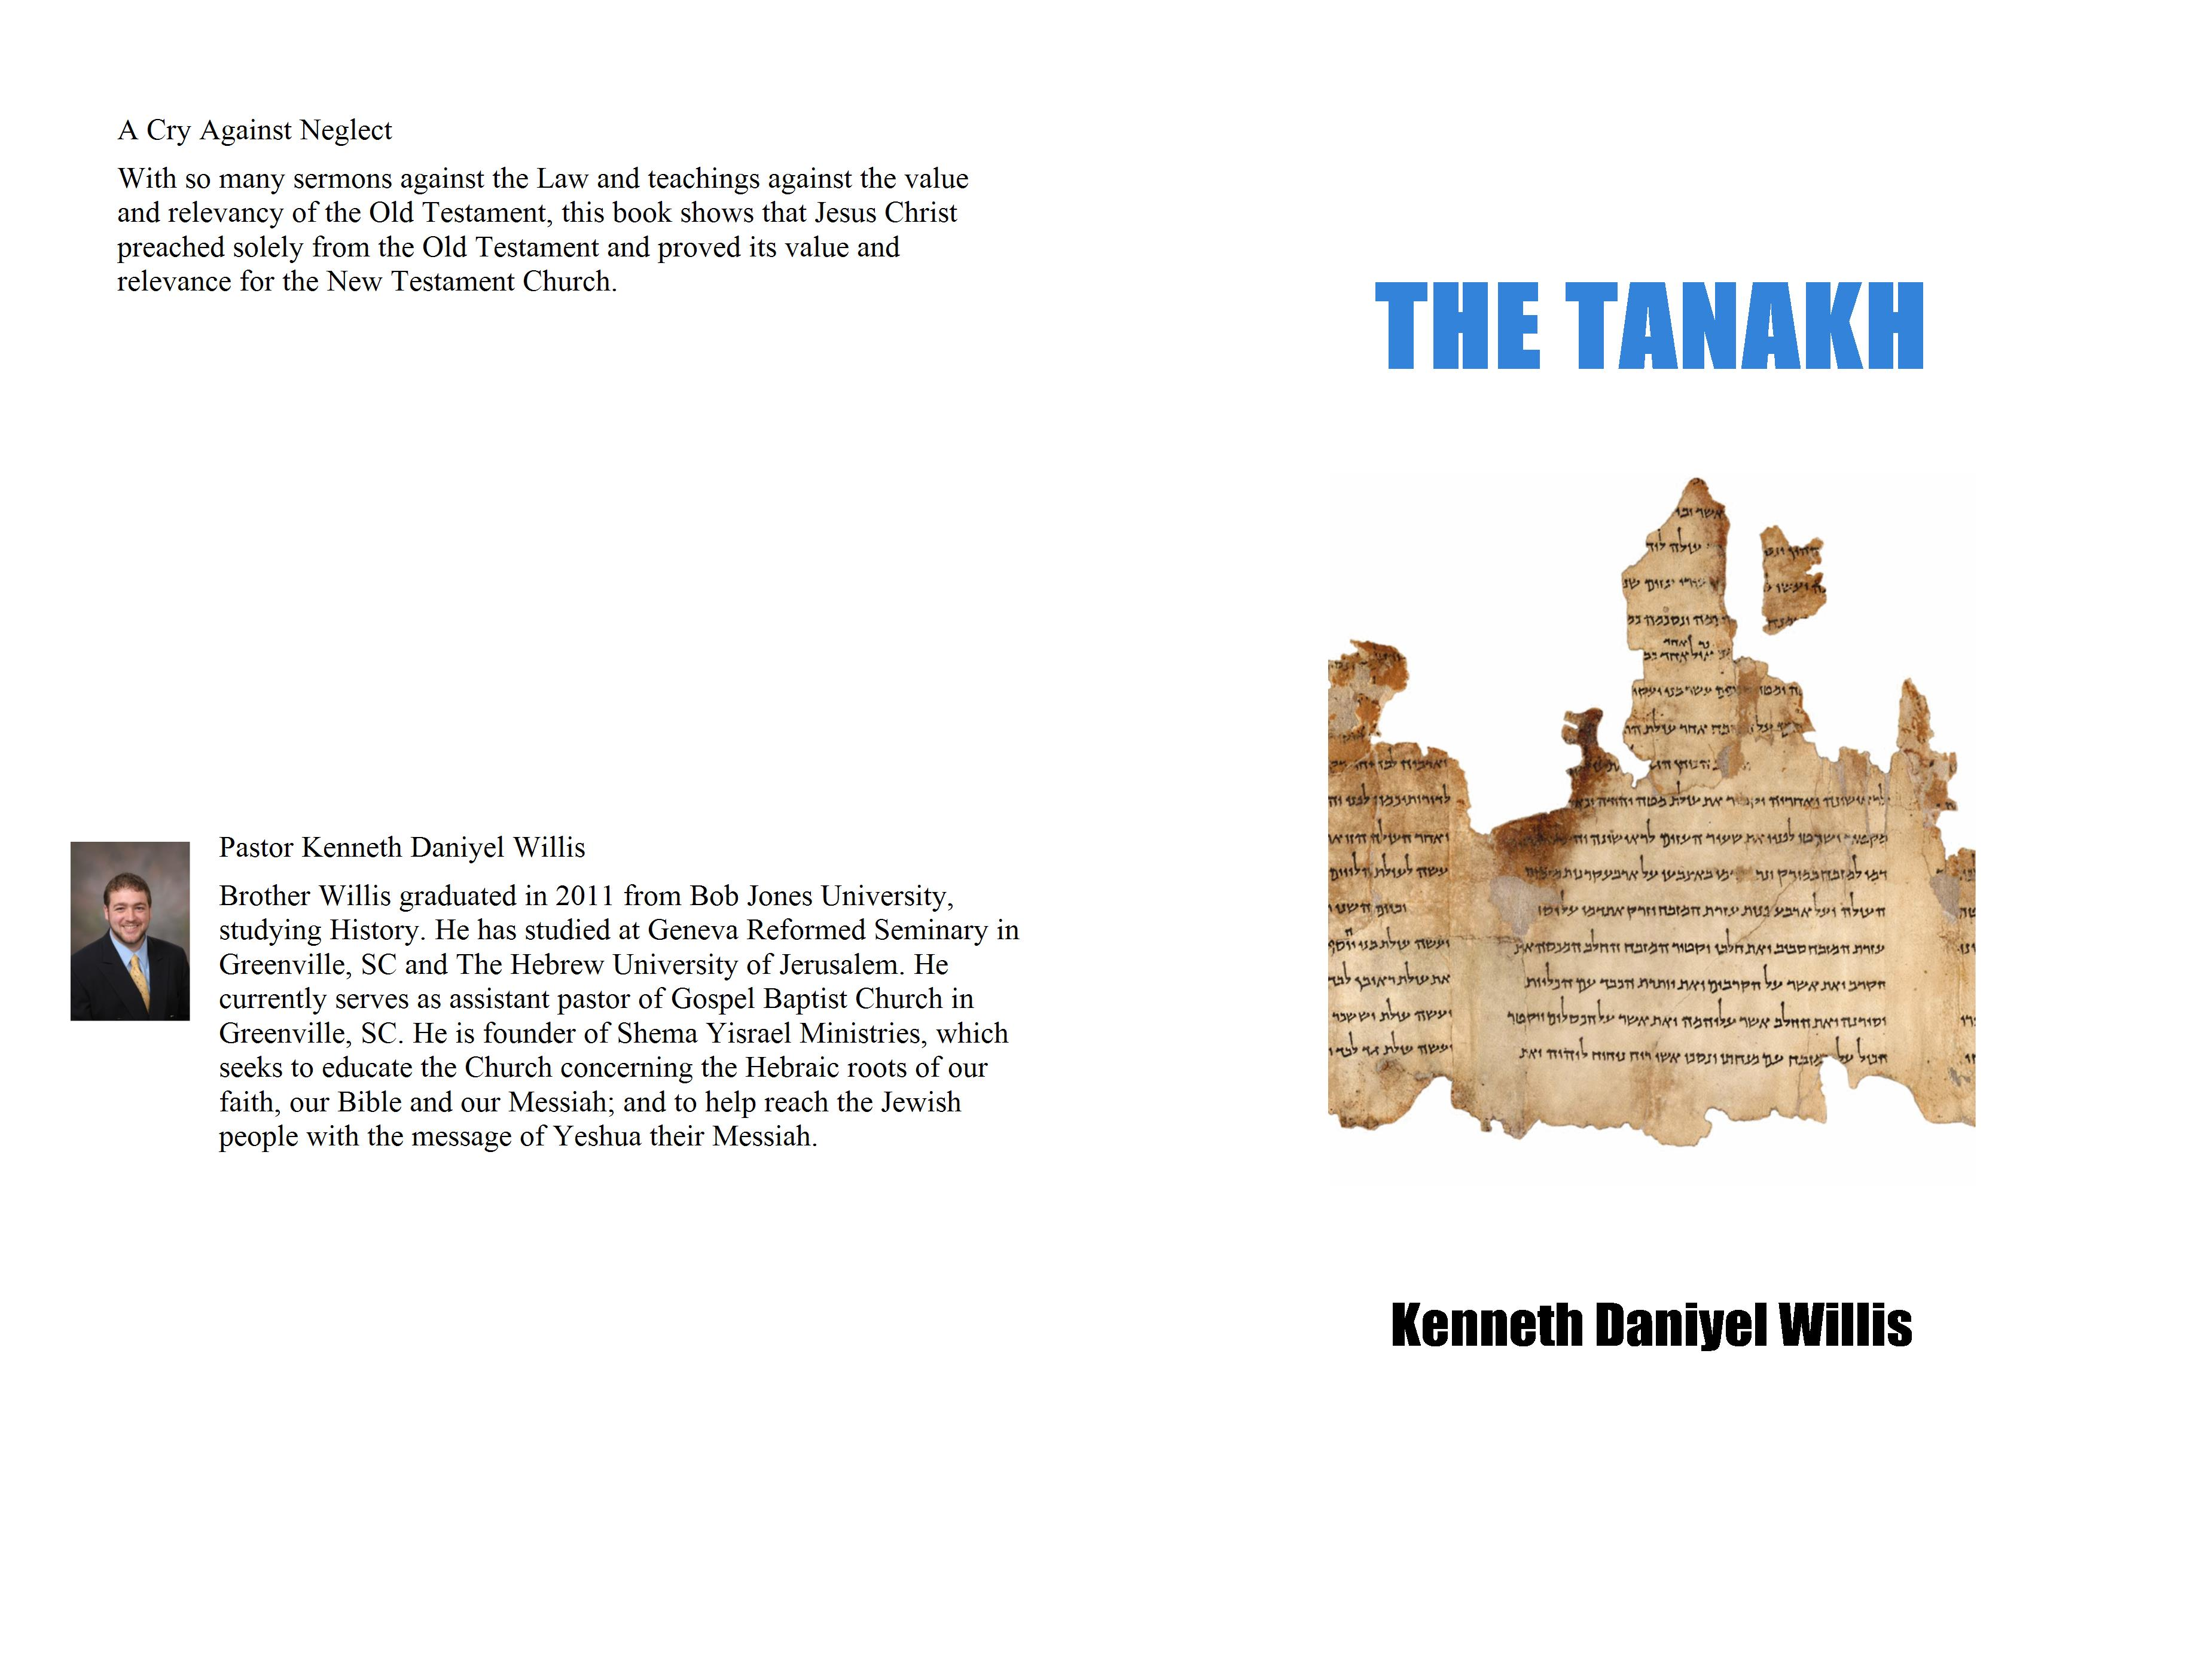 THE TANAKH cover image